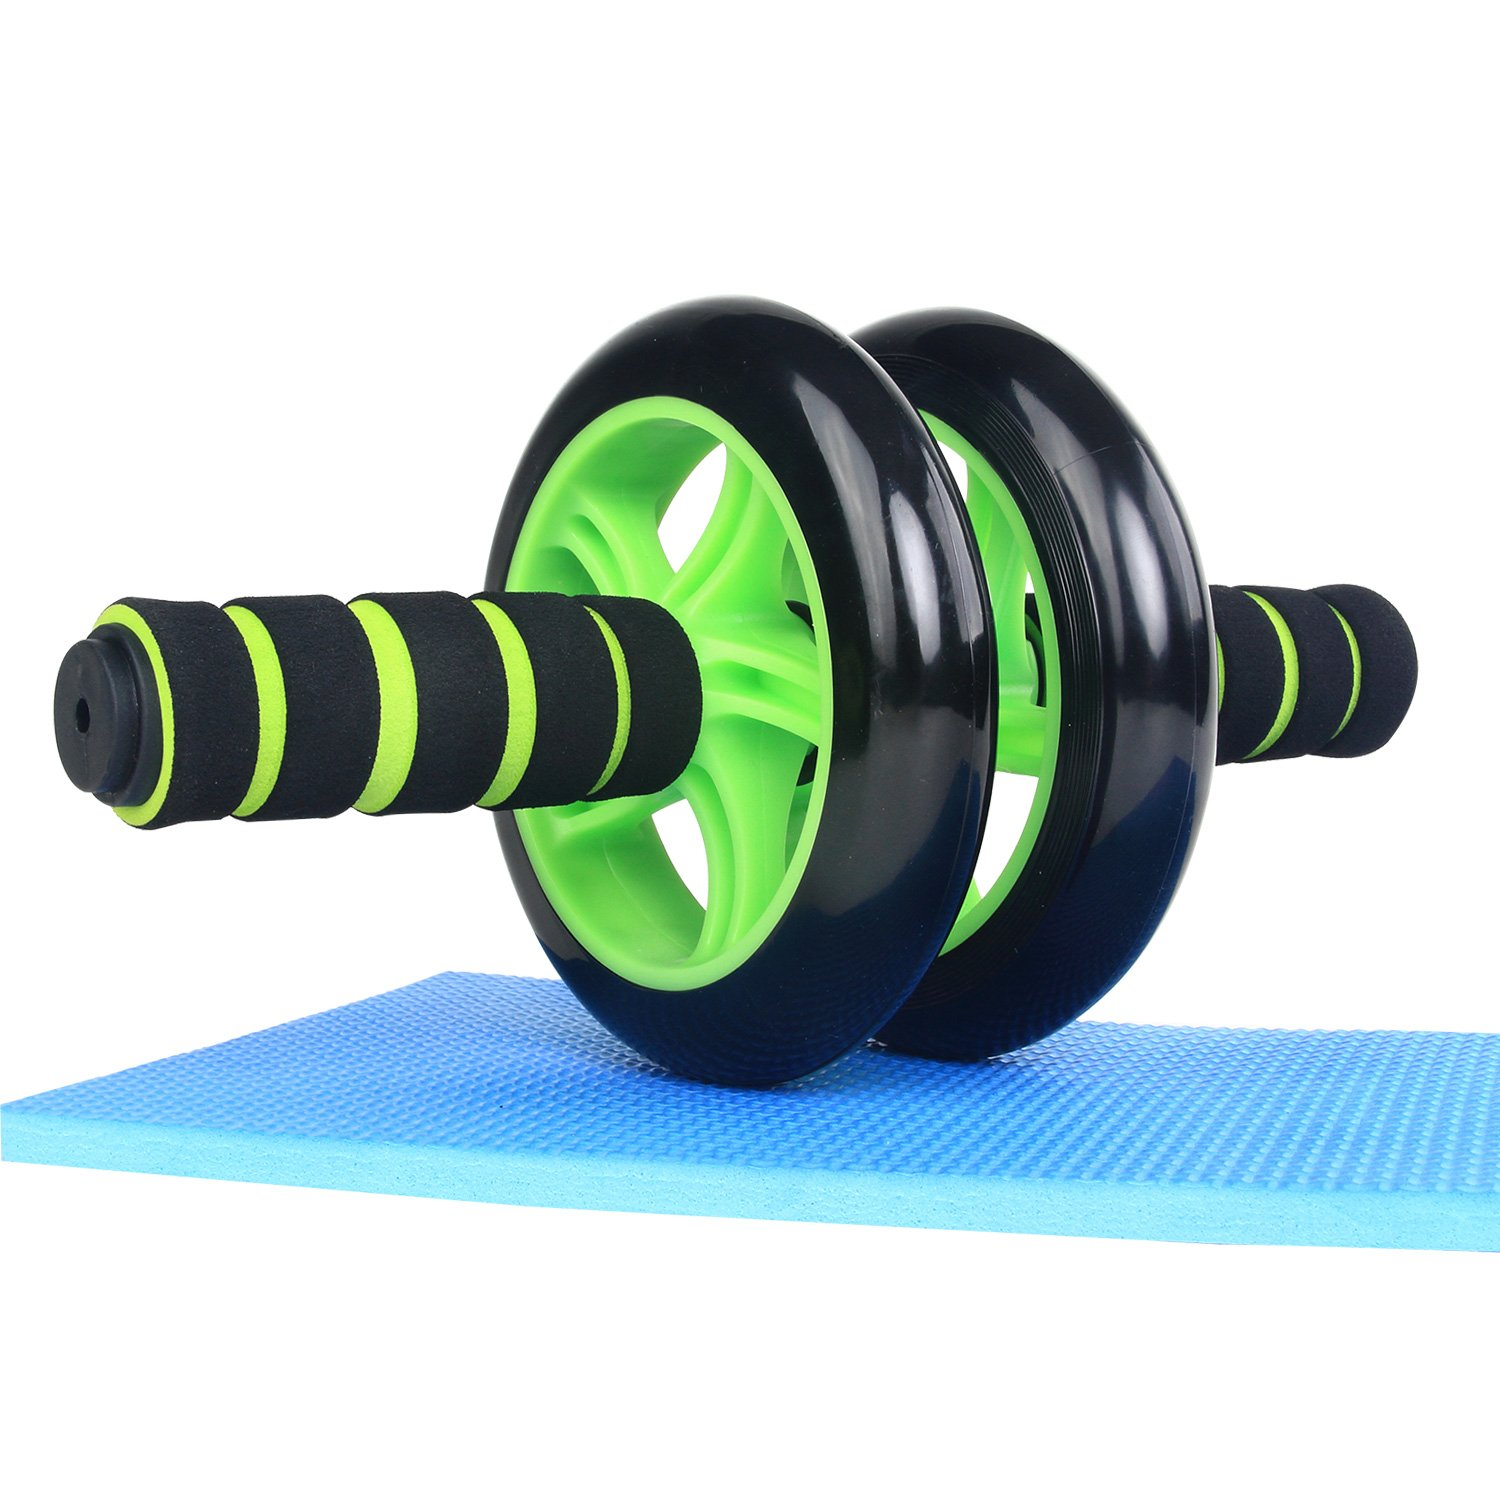 Ise Roulette Ab Wheel Roller De Fitness Musculation Roue Abdominaux